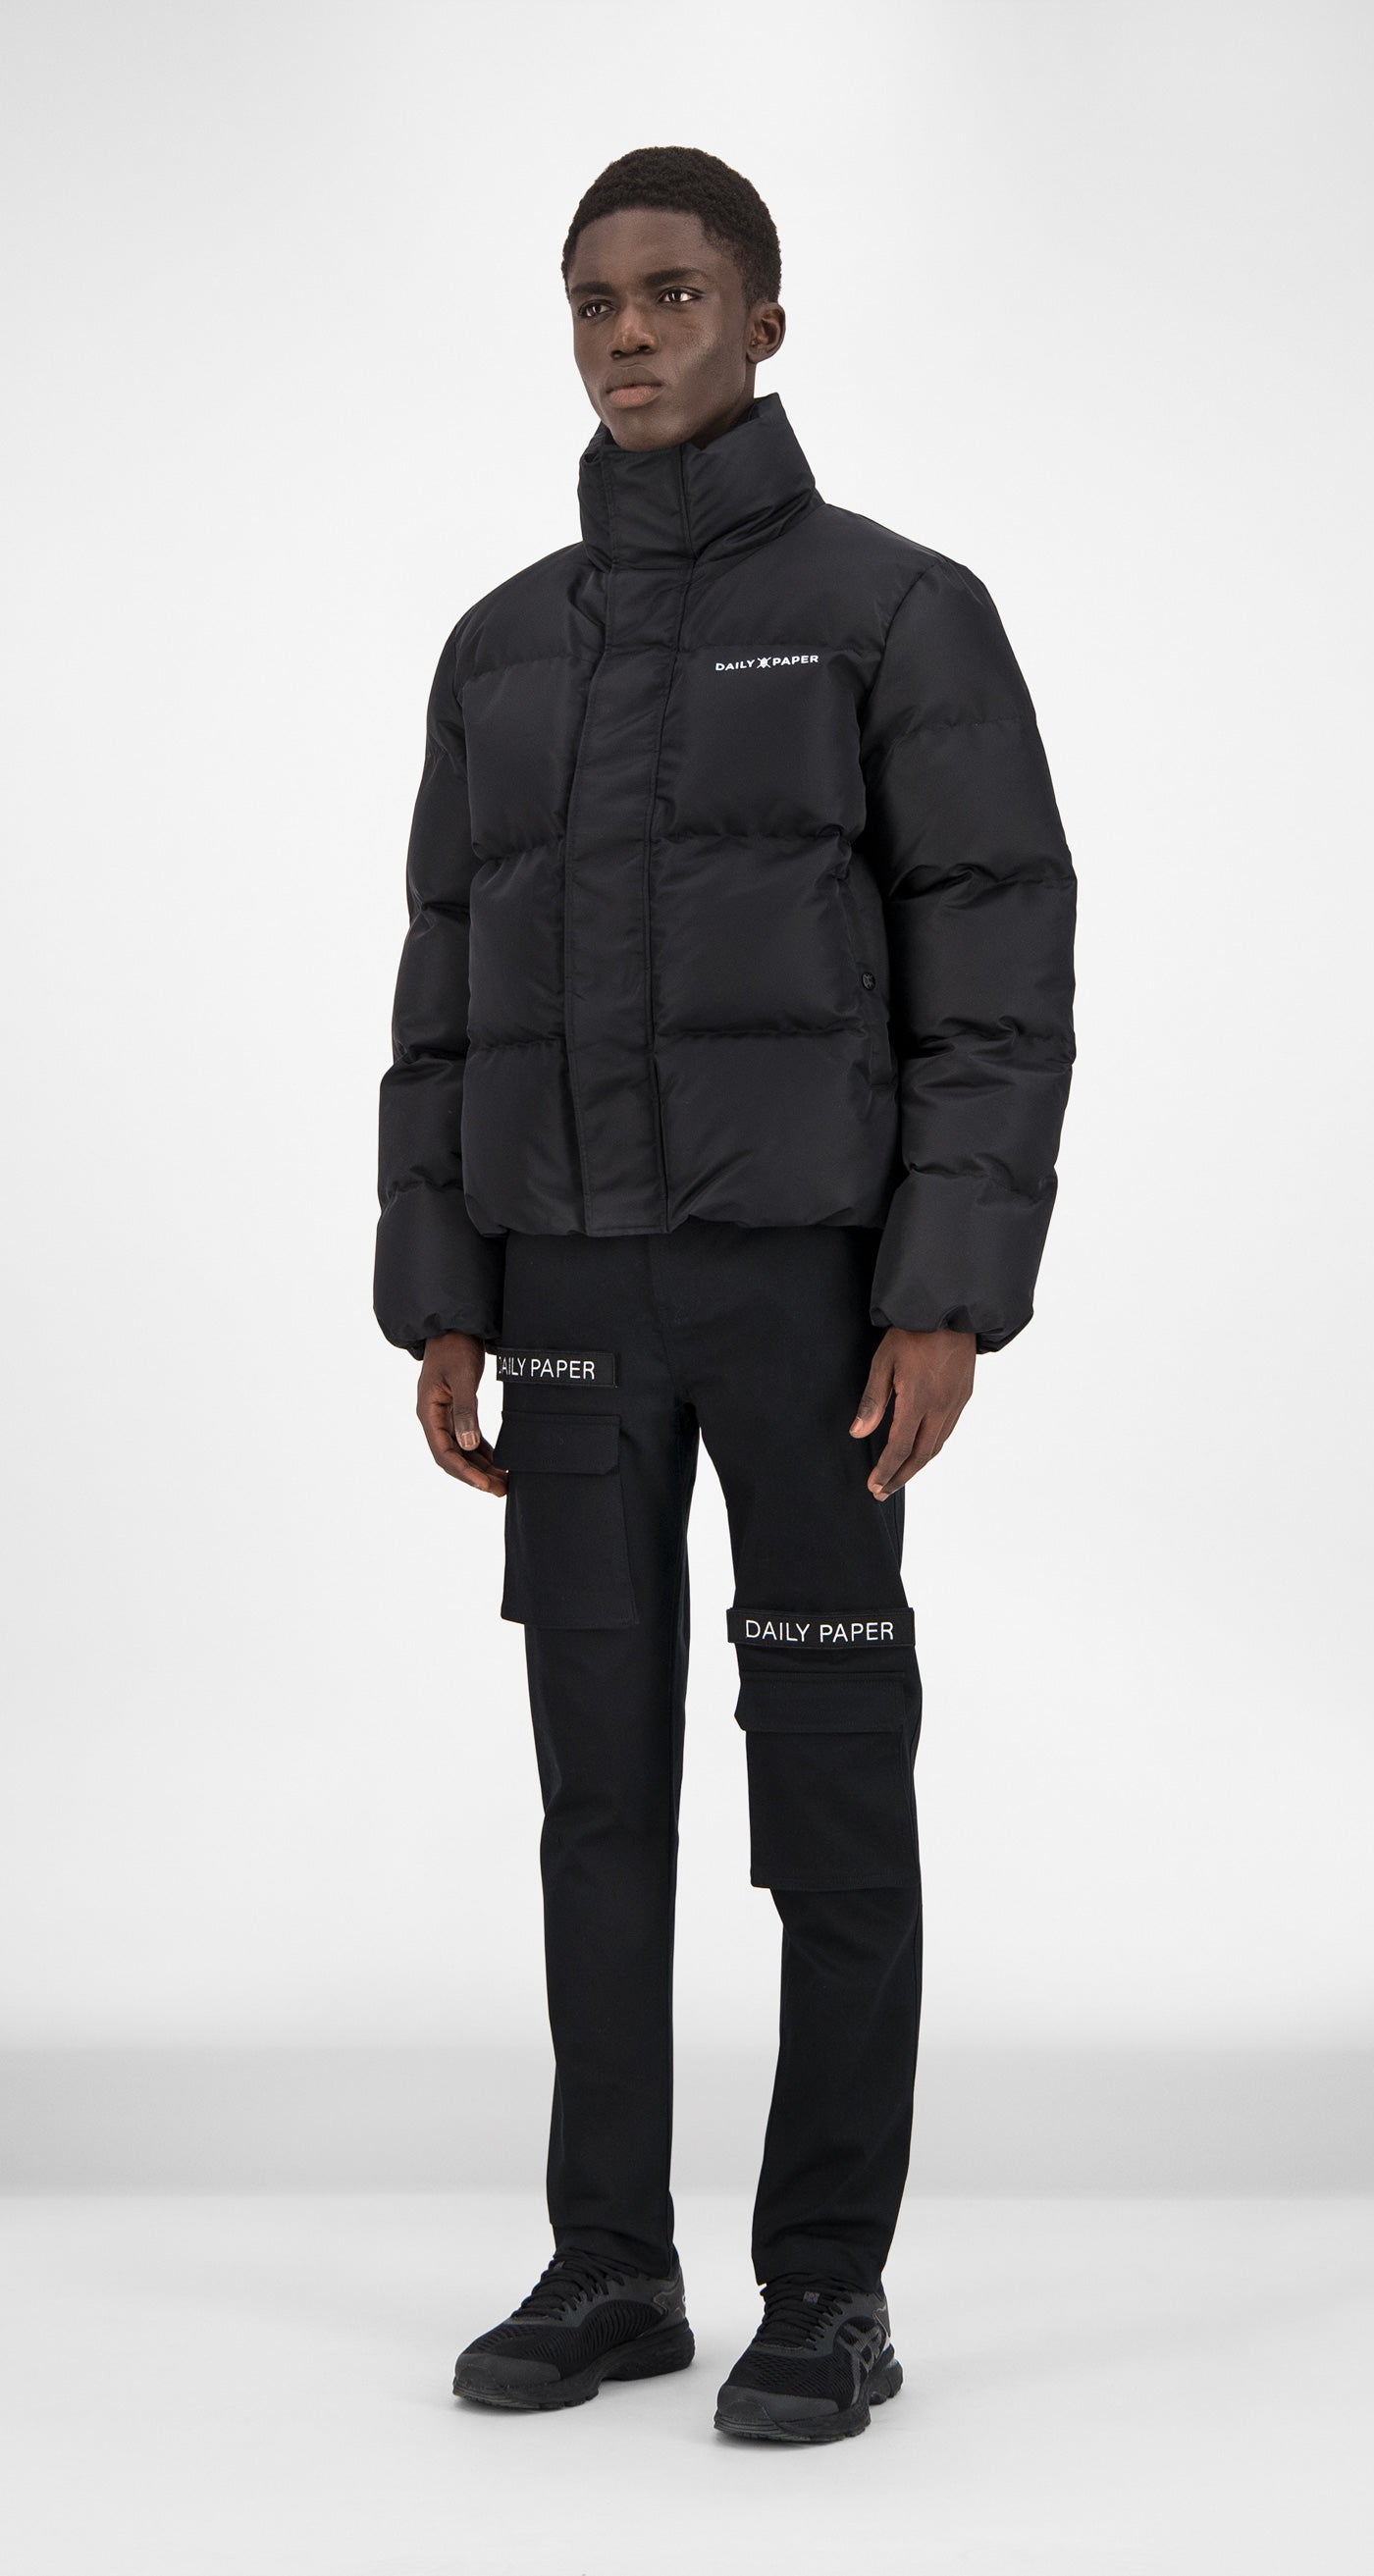 Daily Paper - Black Puffer Jacket Men